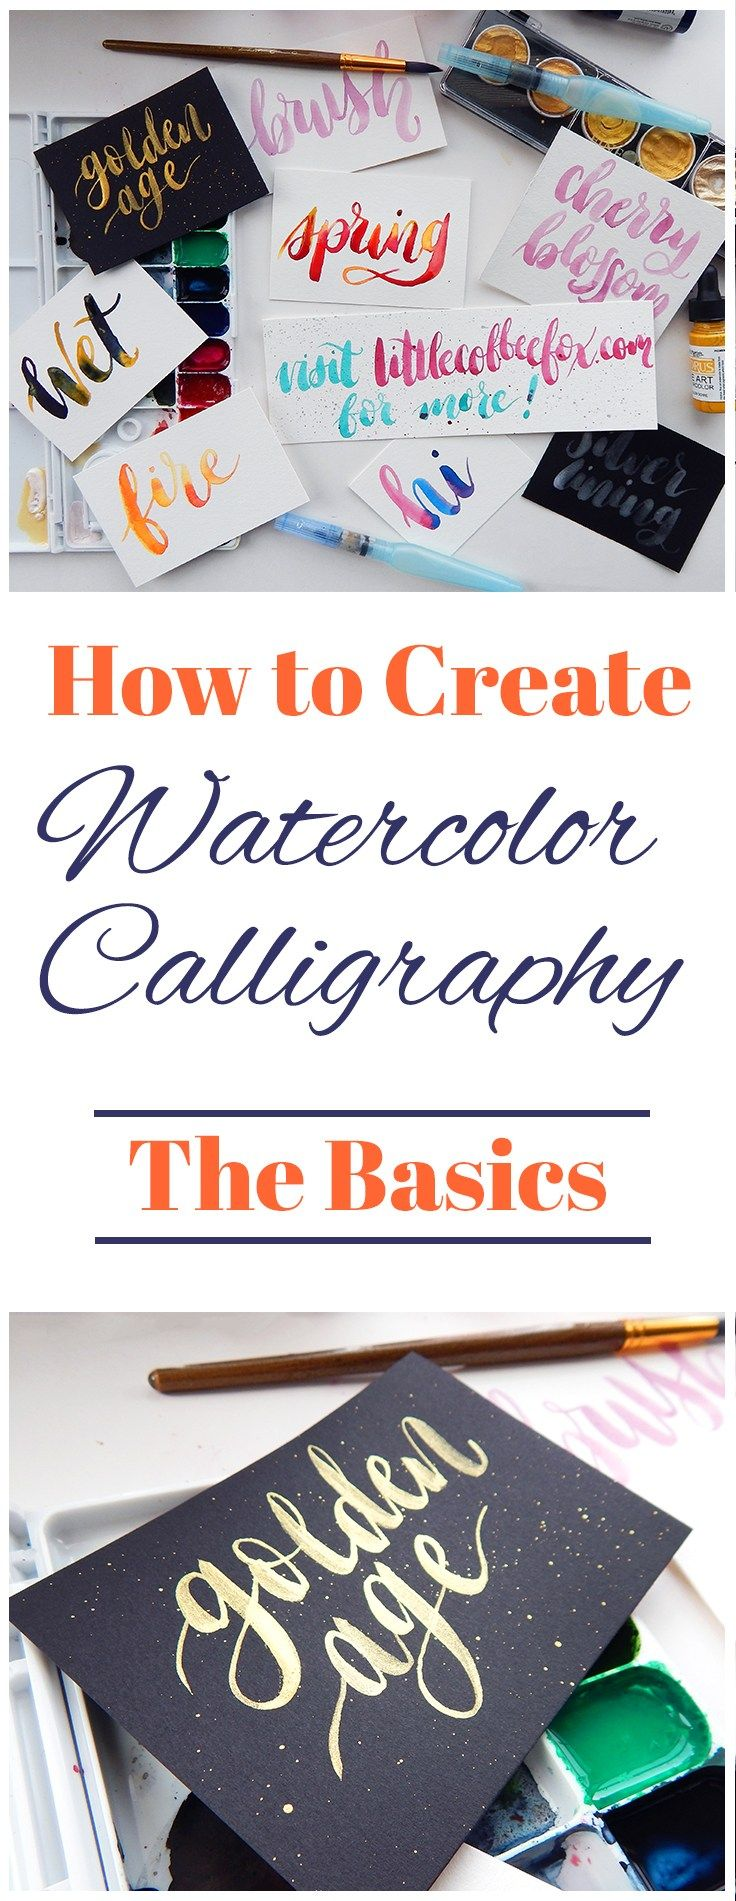 There is no happier marriage than watercolors and brush lettering. The wonderful world of watercolor calligraphy has a huge range of possibilities, and the sky is the limit on what you can create. It's fun, creative, and elegant. Plus it's easy once you get a grasp on the basics!